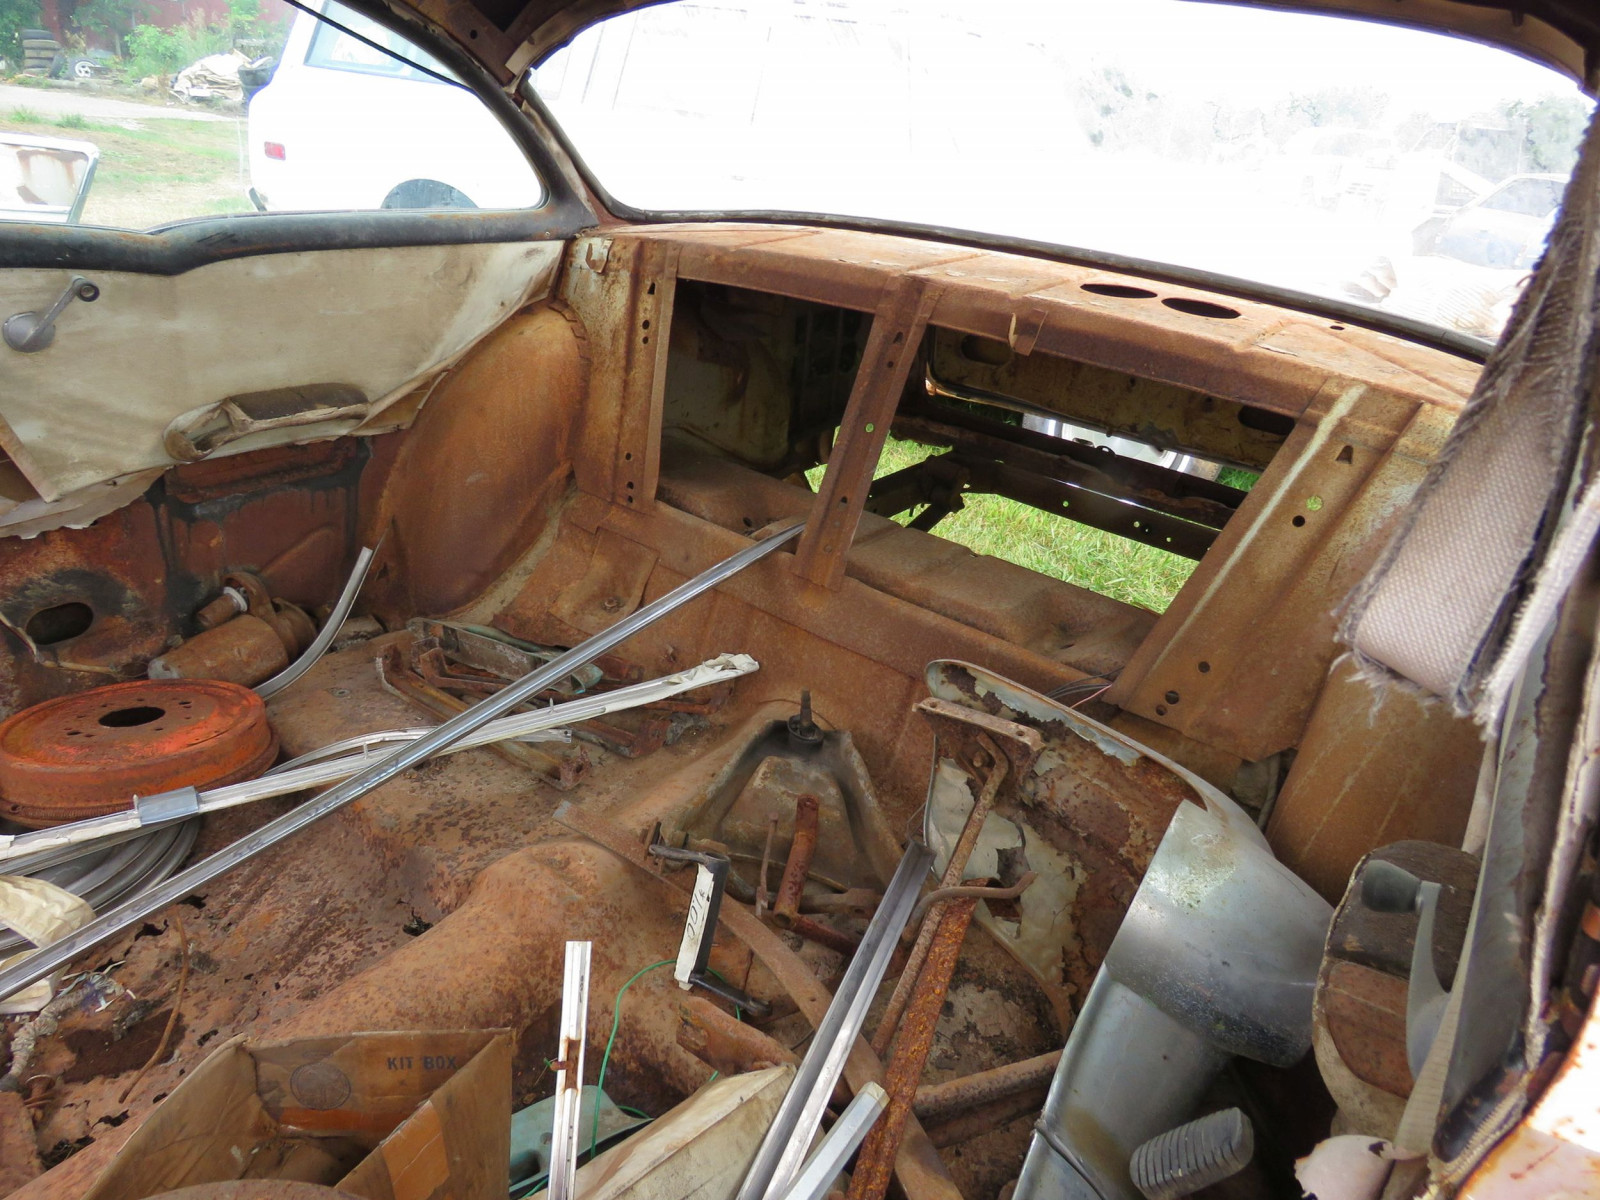 1957 2Dr Sedan Rolling Body for Rod or Restore - Image 7